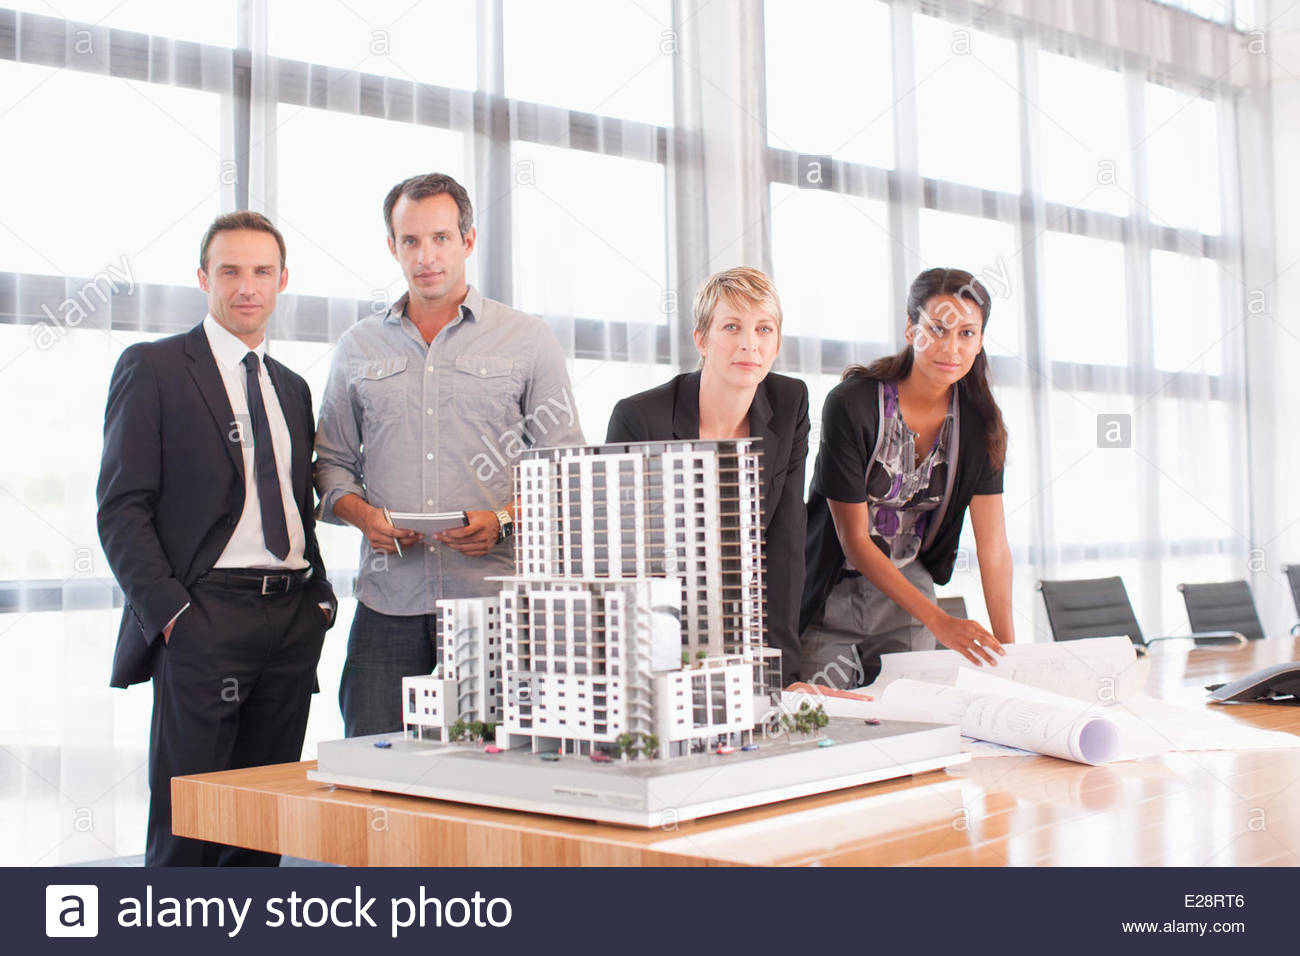 Business people standing with building model - Stock Image